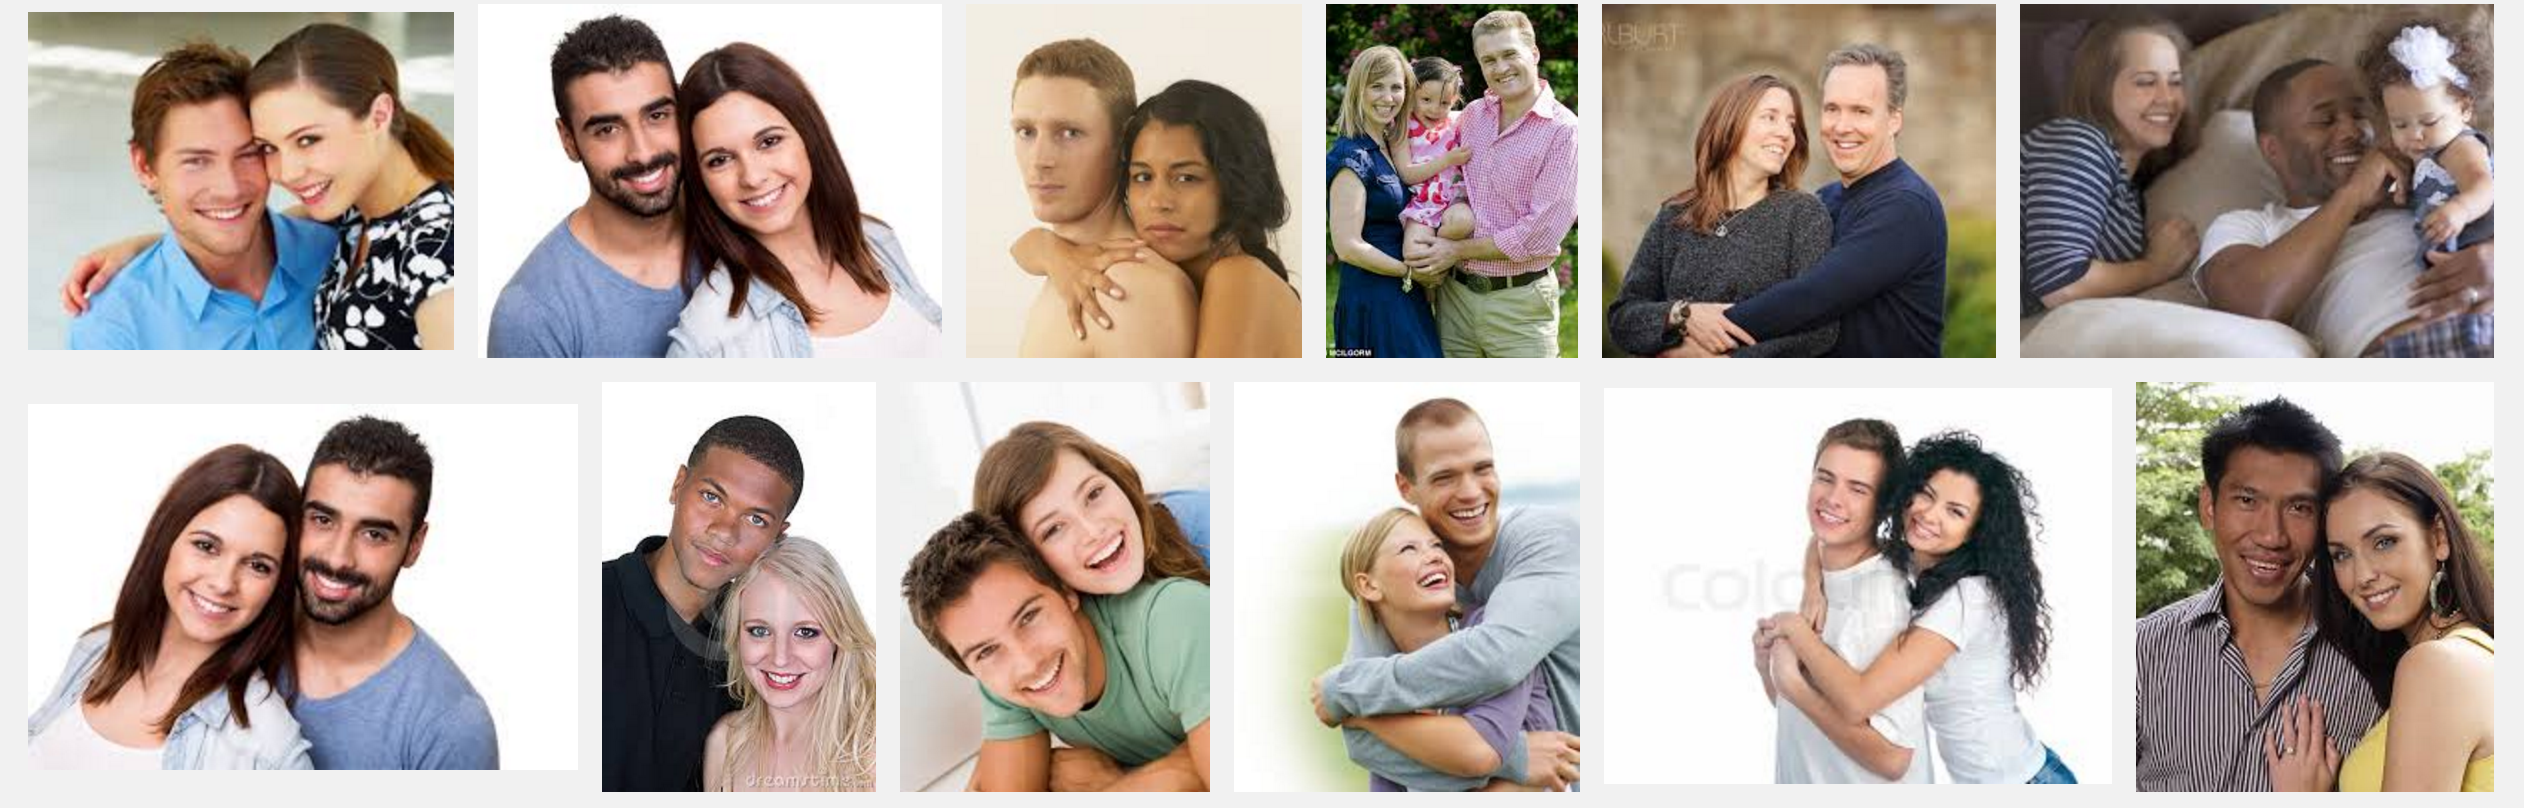 Why does Google incorrectly show interracial couples during image